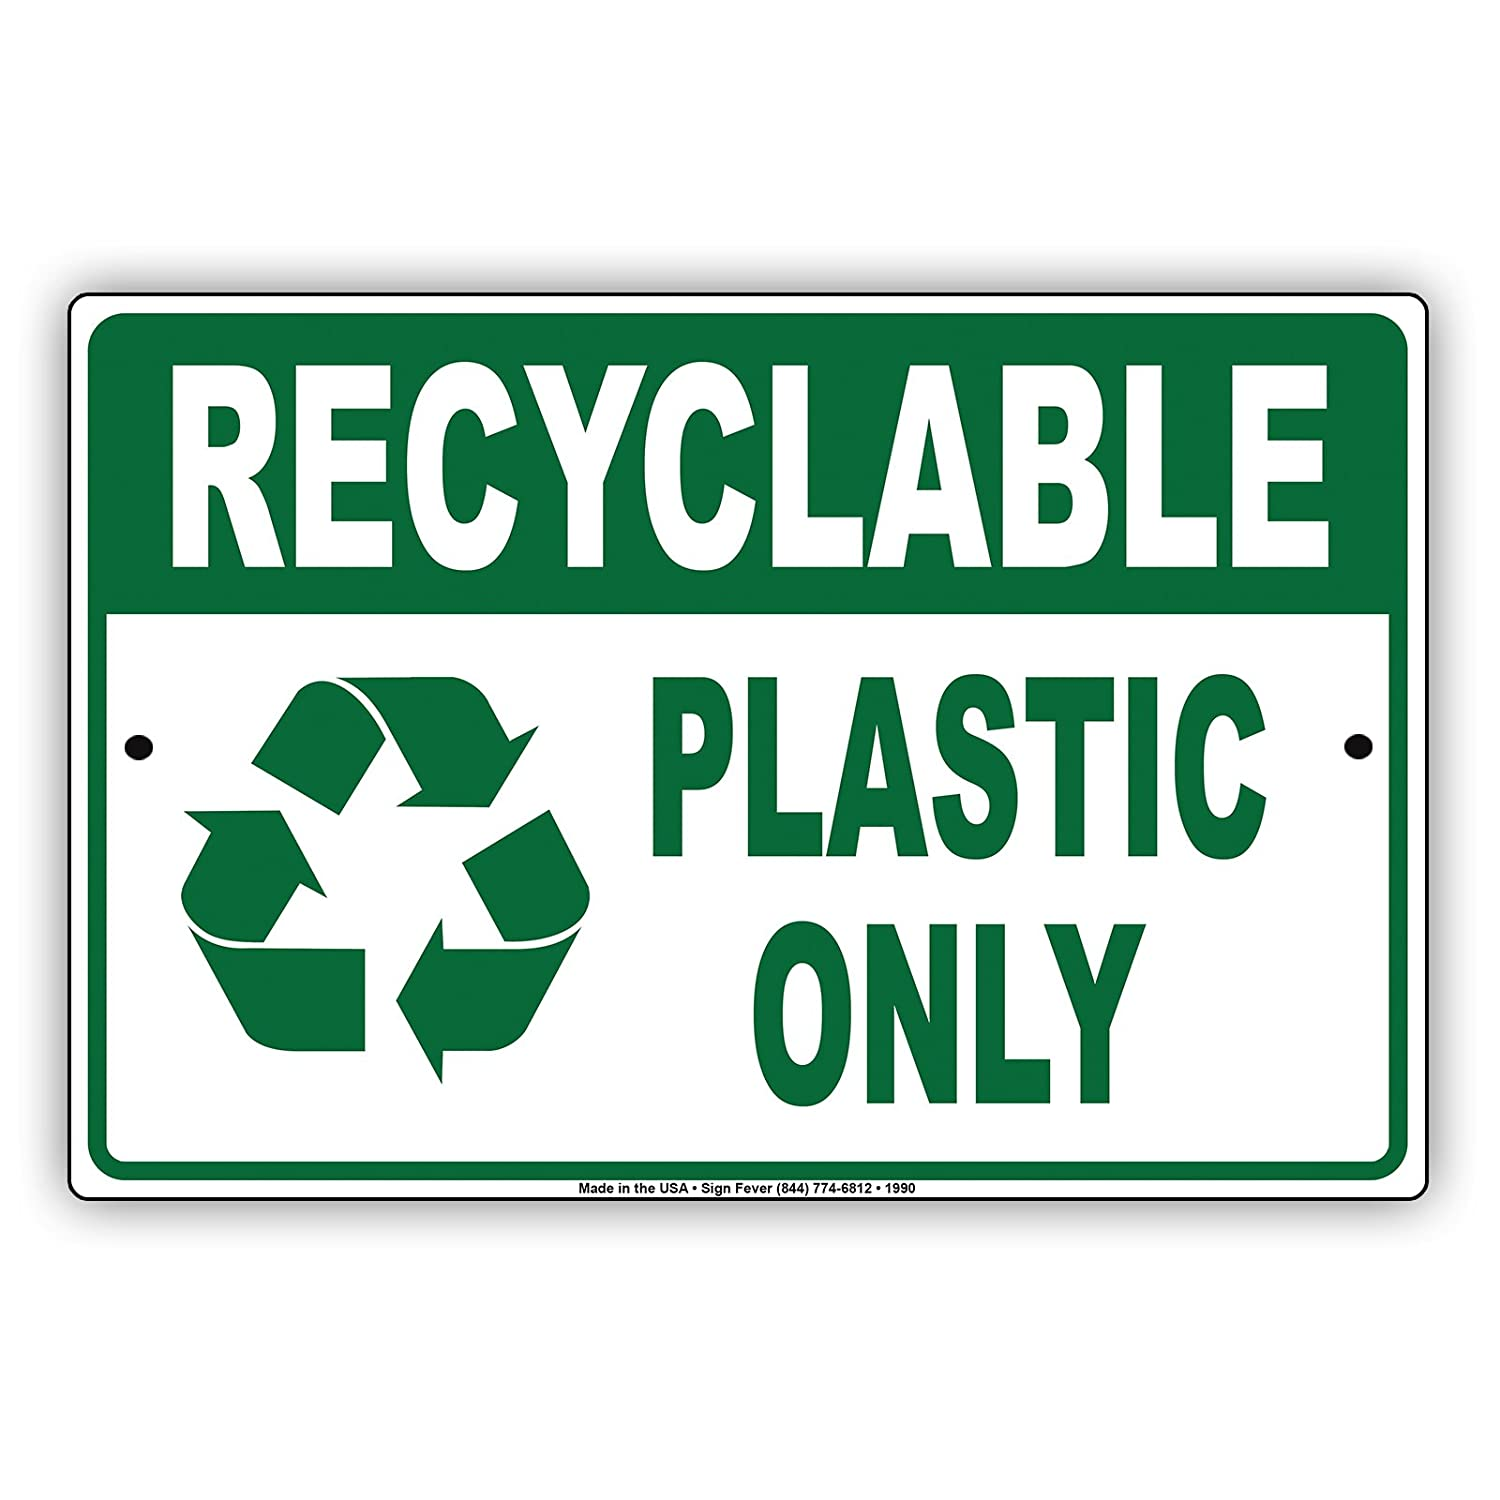 Amazon com: Recyclable Plastic Only Environmental Friendly